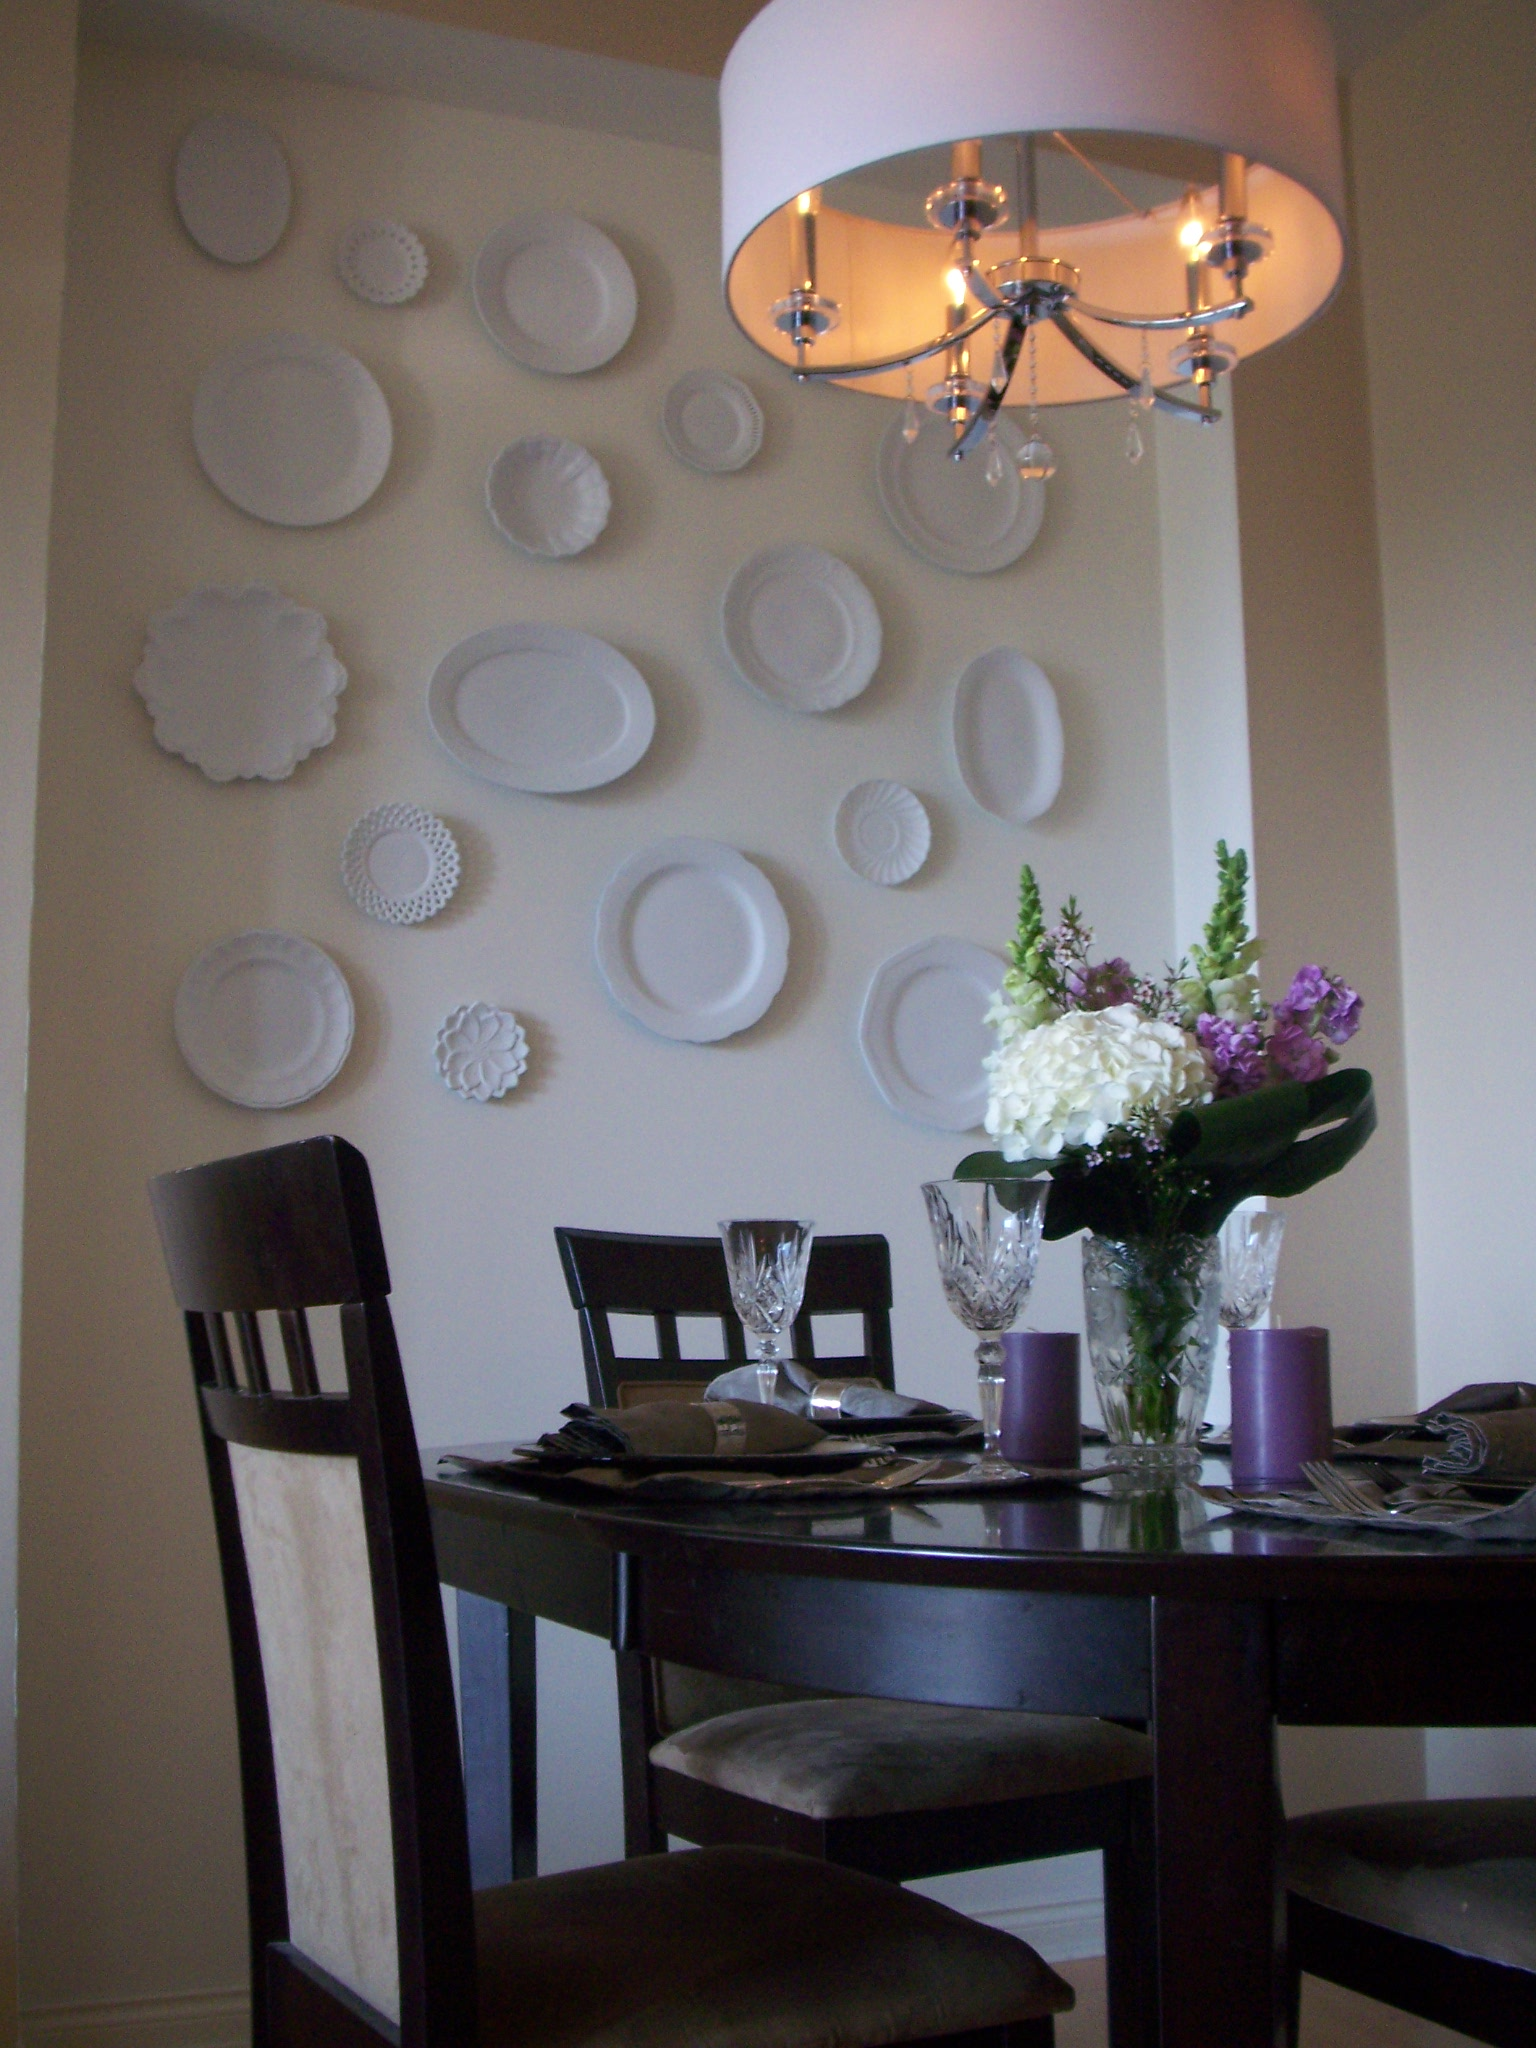 """We tried out our """"new"""" dining room on some friends for a dinner party."""